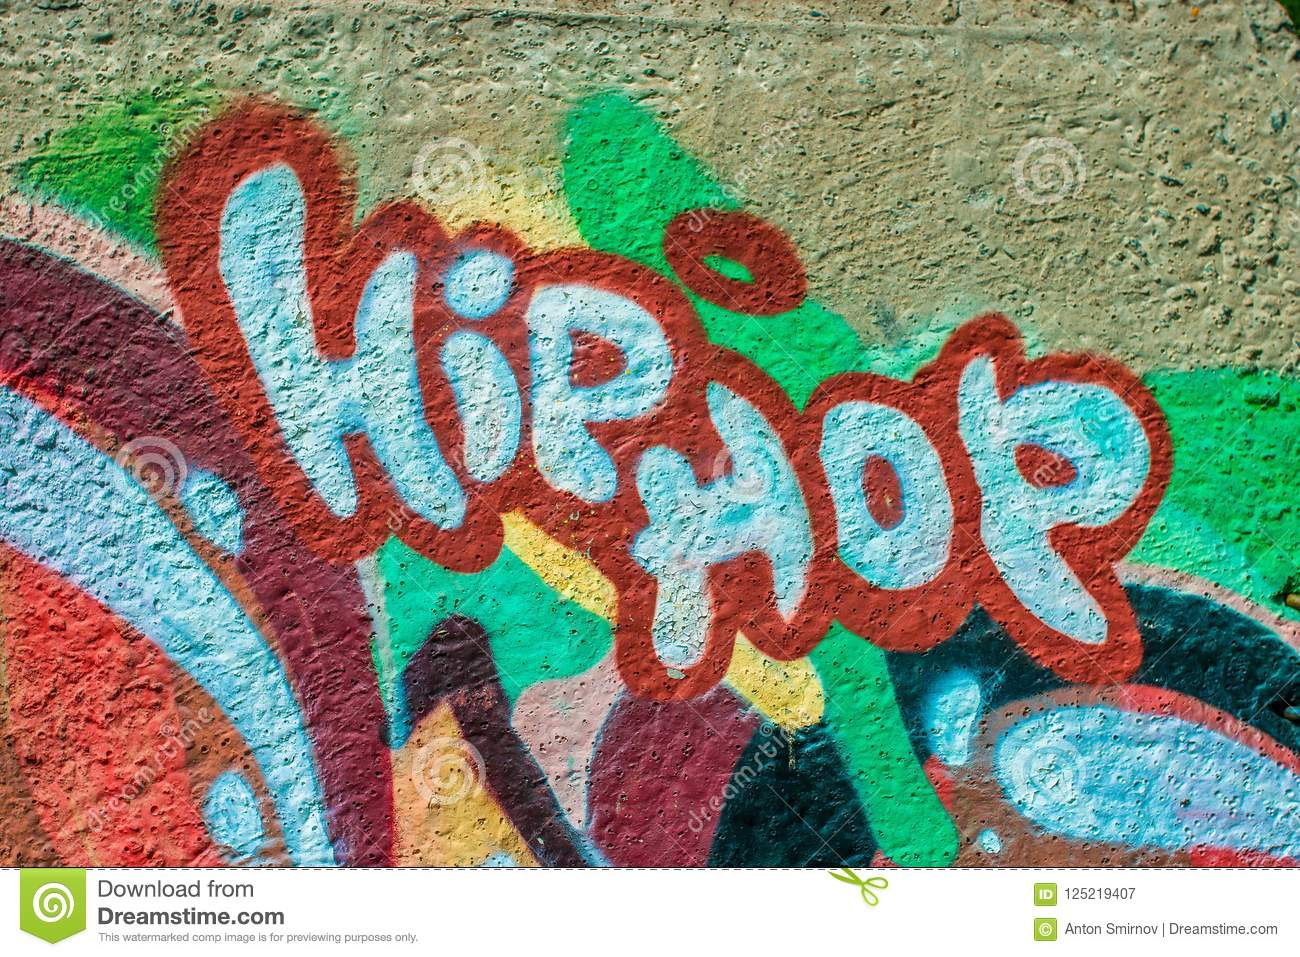 Beautiful street art graffiti abstract creative drawing fashion colors on the walls of the city urban contemporary culture